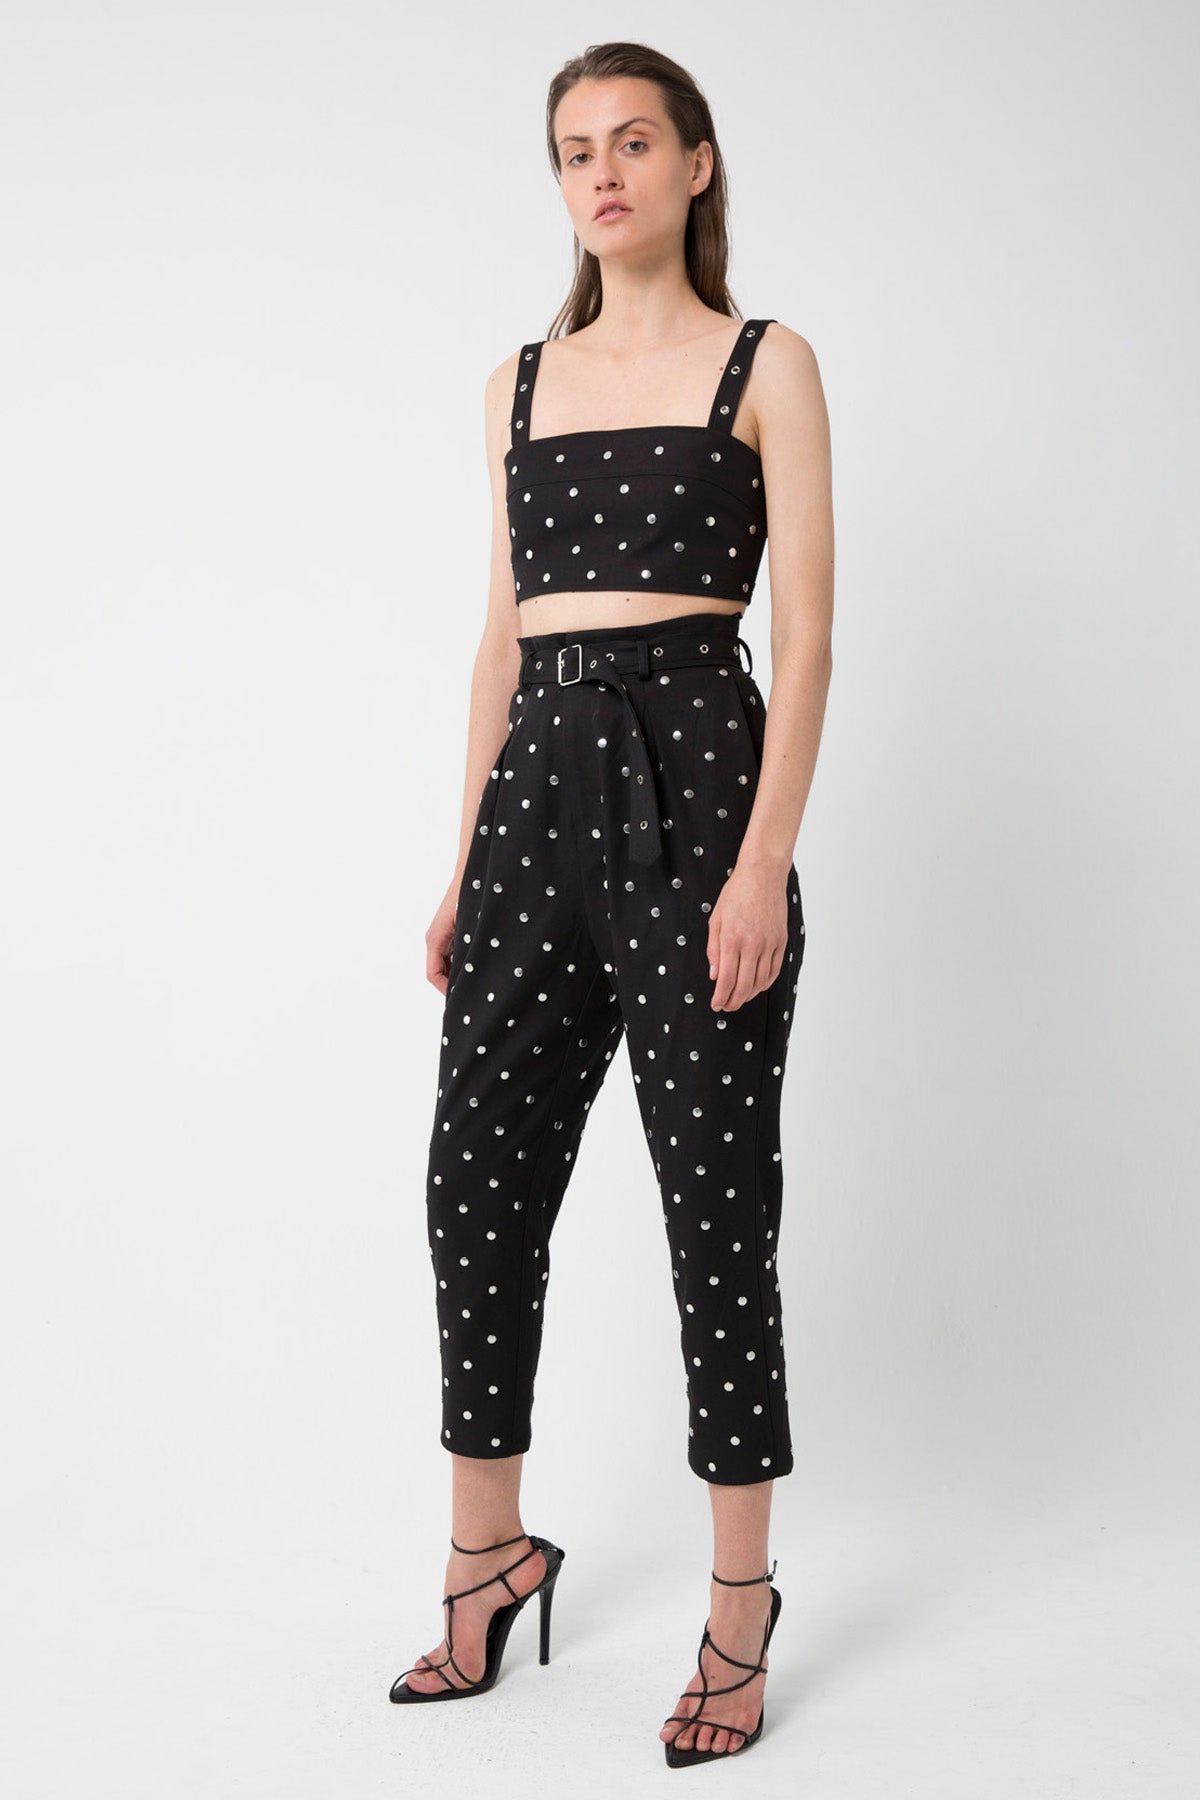 HEY STUD TROUSER | BLACK